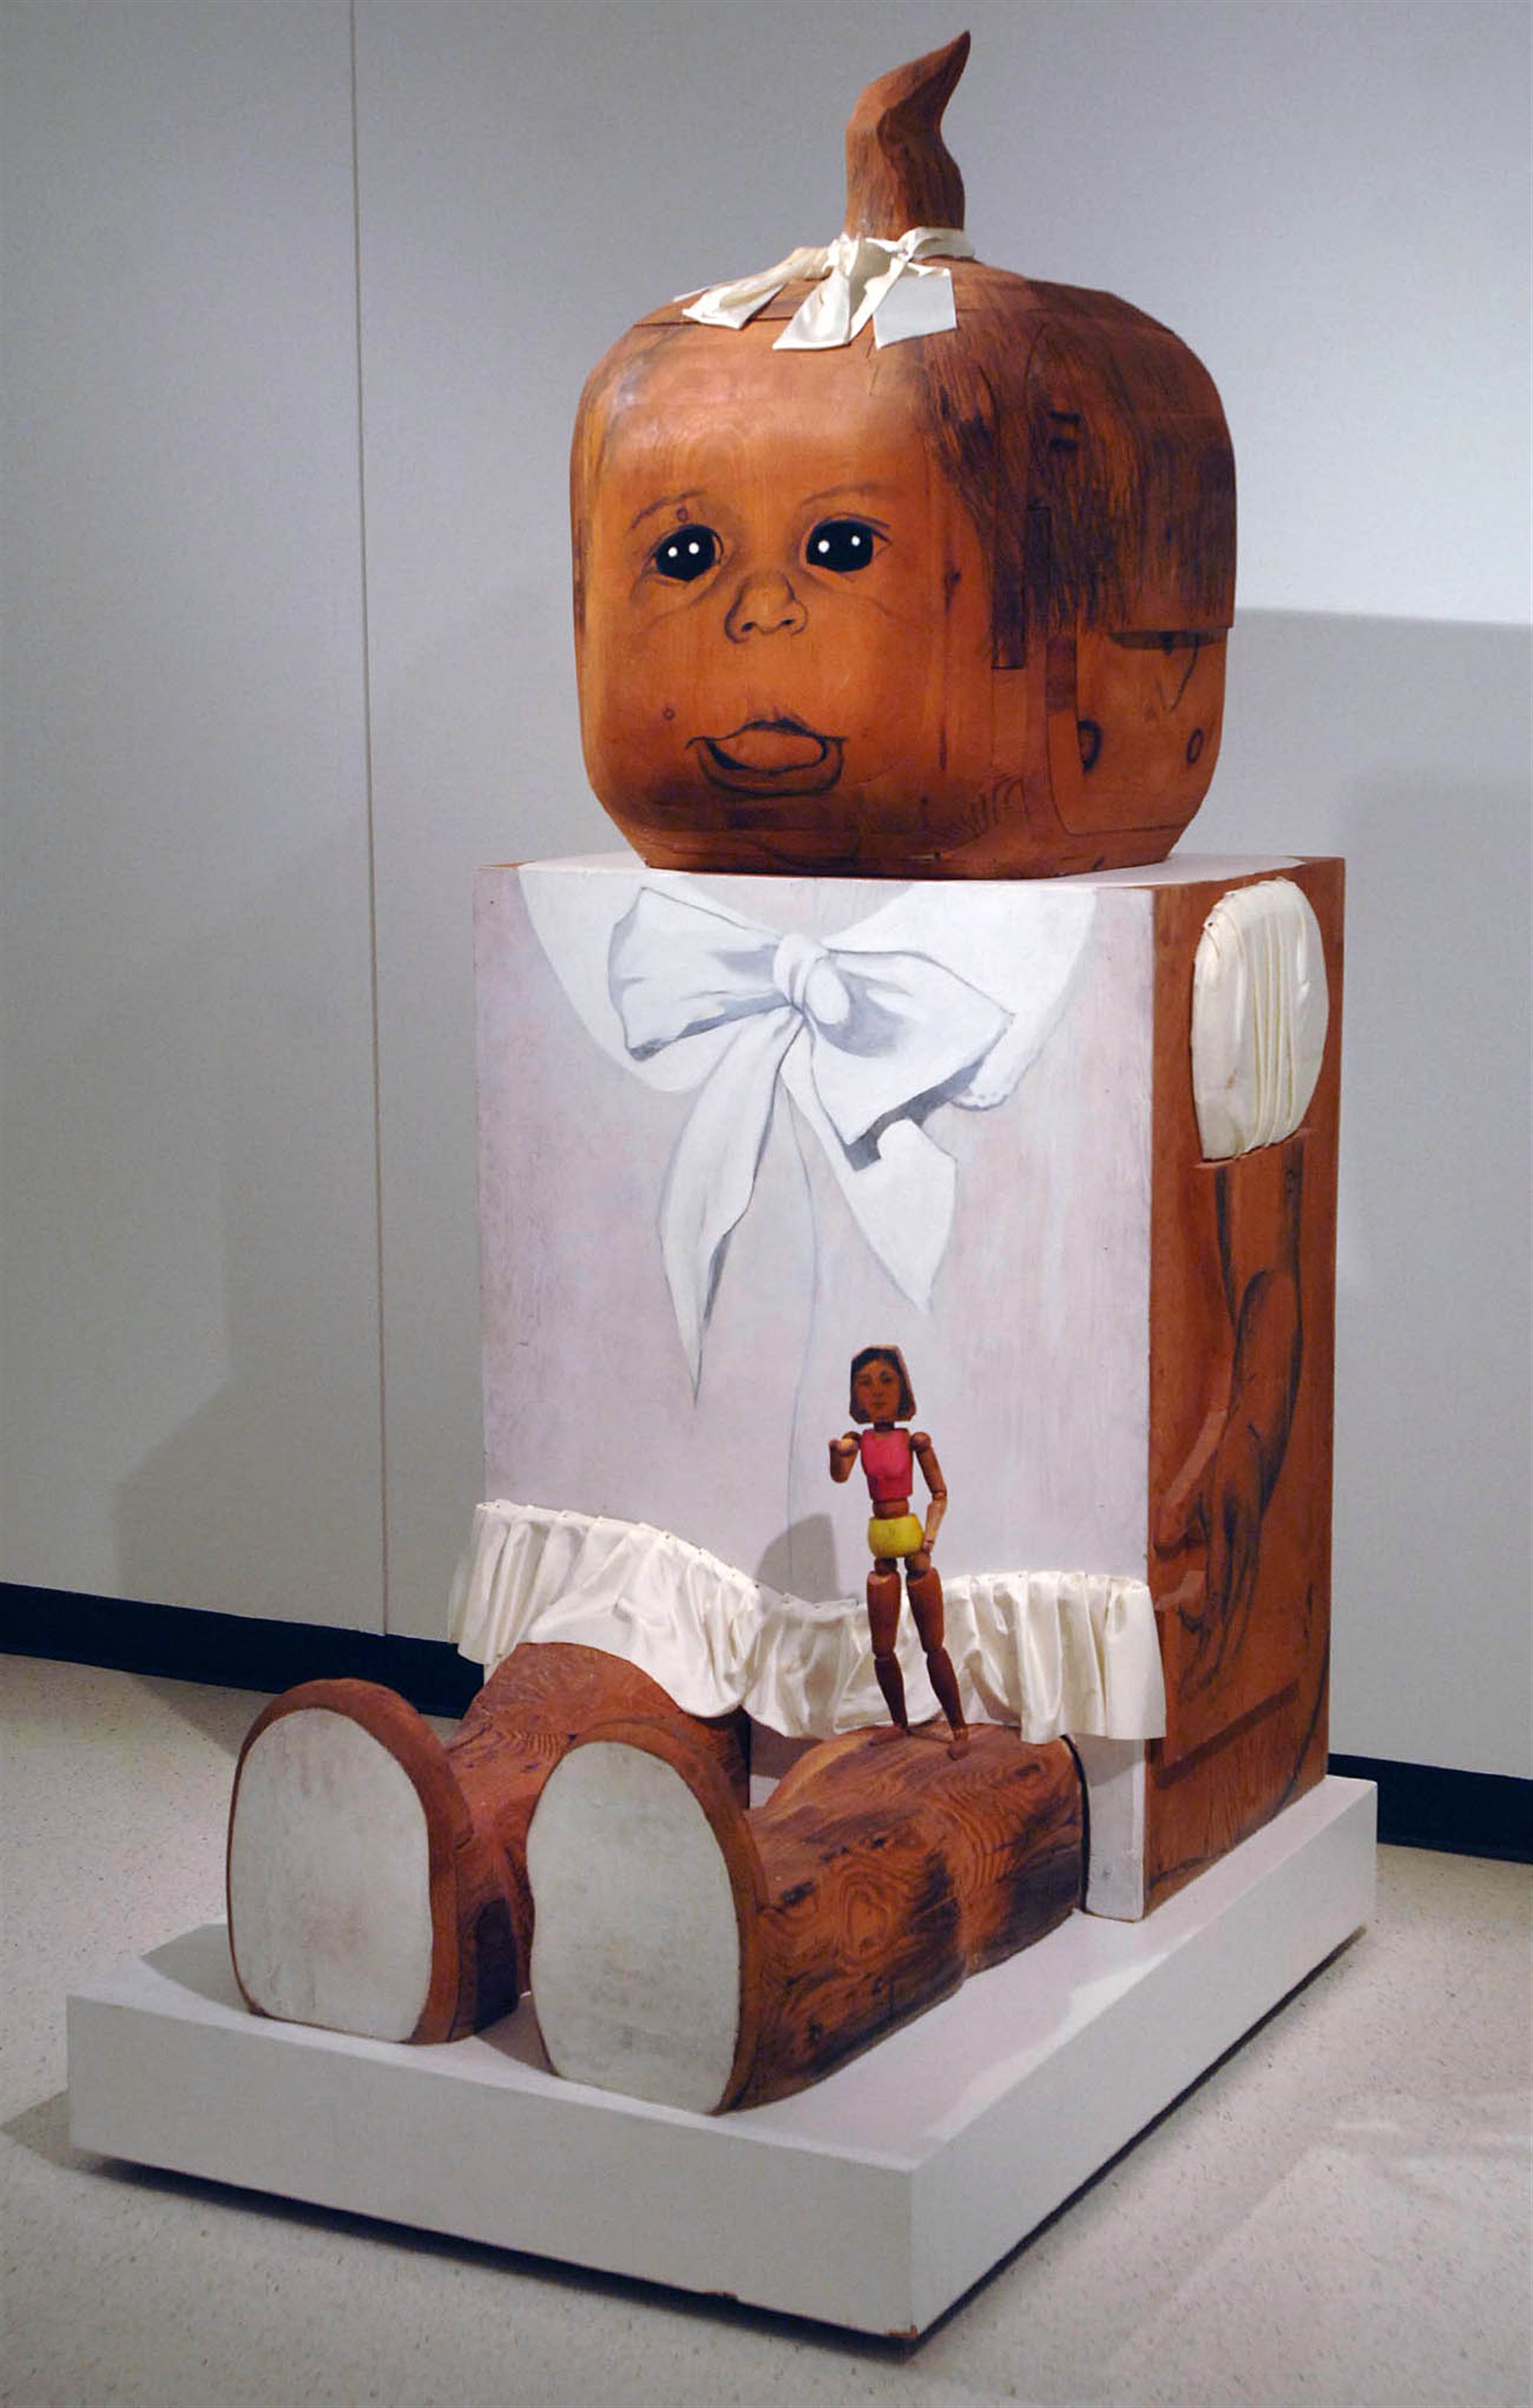 "Baby Girl / Marisol / 1963.  Upon its purchase in 1964, Marisol's wood sculpture ""Baby Girl"" became an instant hit, charming children and disconcerting adults in equal measure. Its oddly bulbous head is juxtaposed against a square body, and a doll perched on the girl's left leg prompts viewers to ponder the expectations society places on an innocent infant expected to grow into a feminized adult."